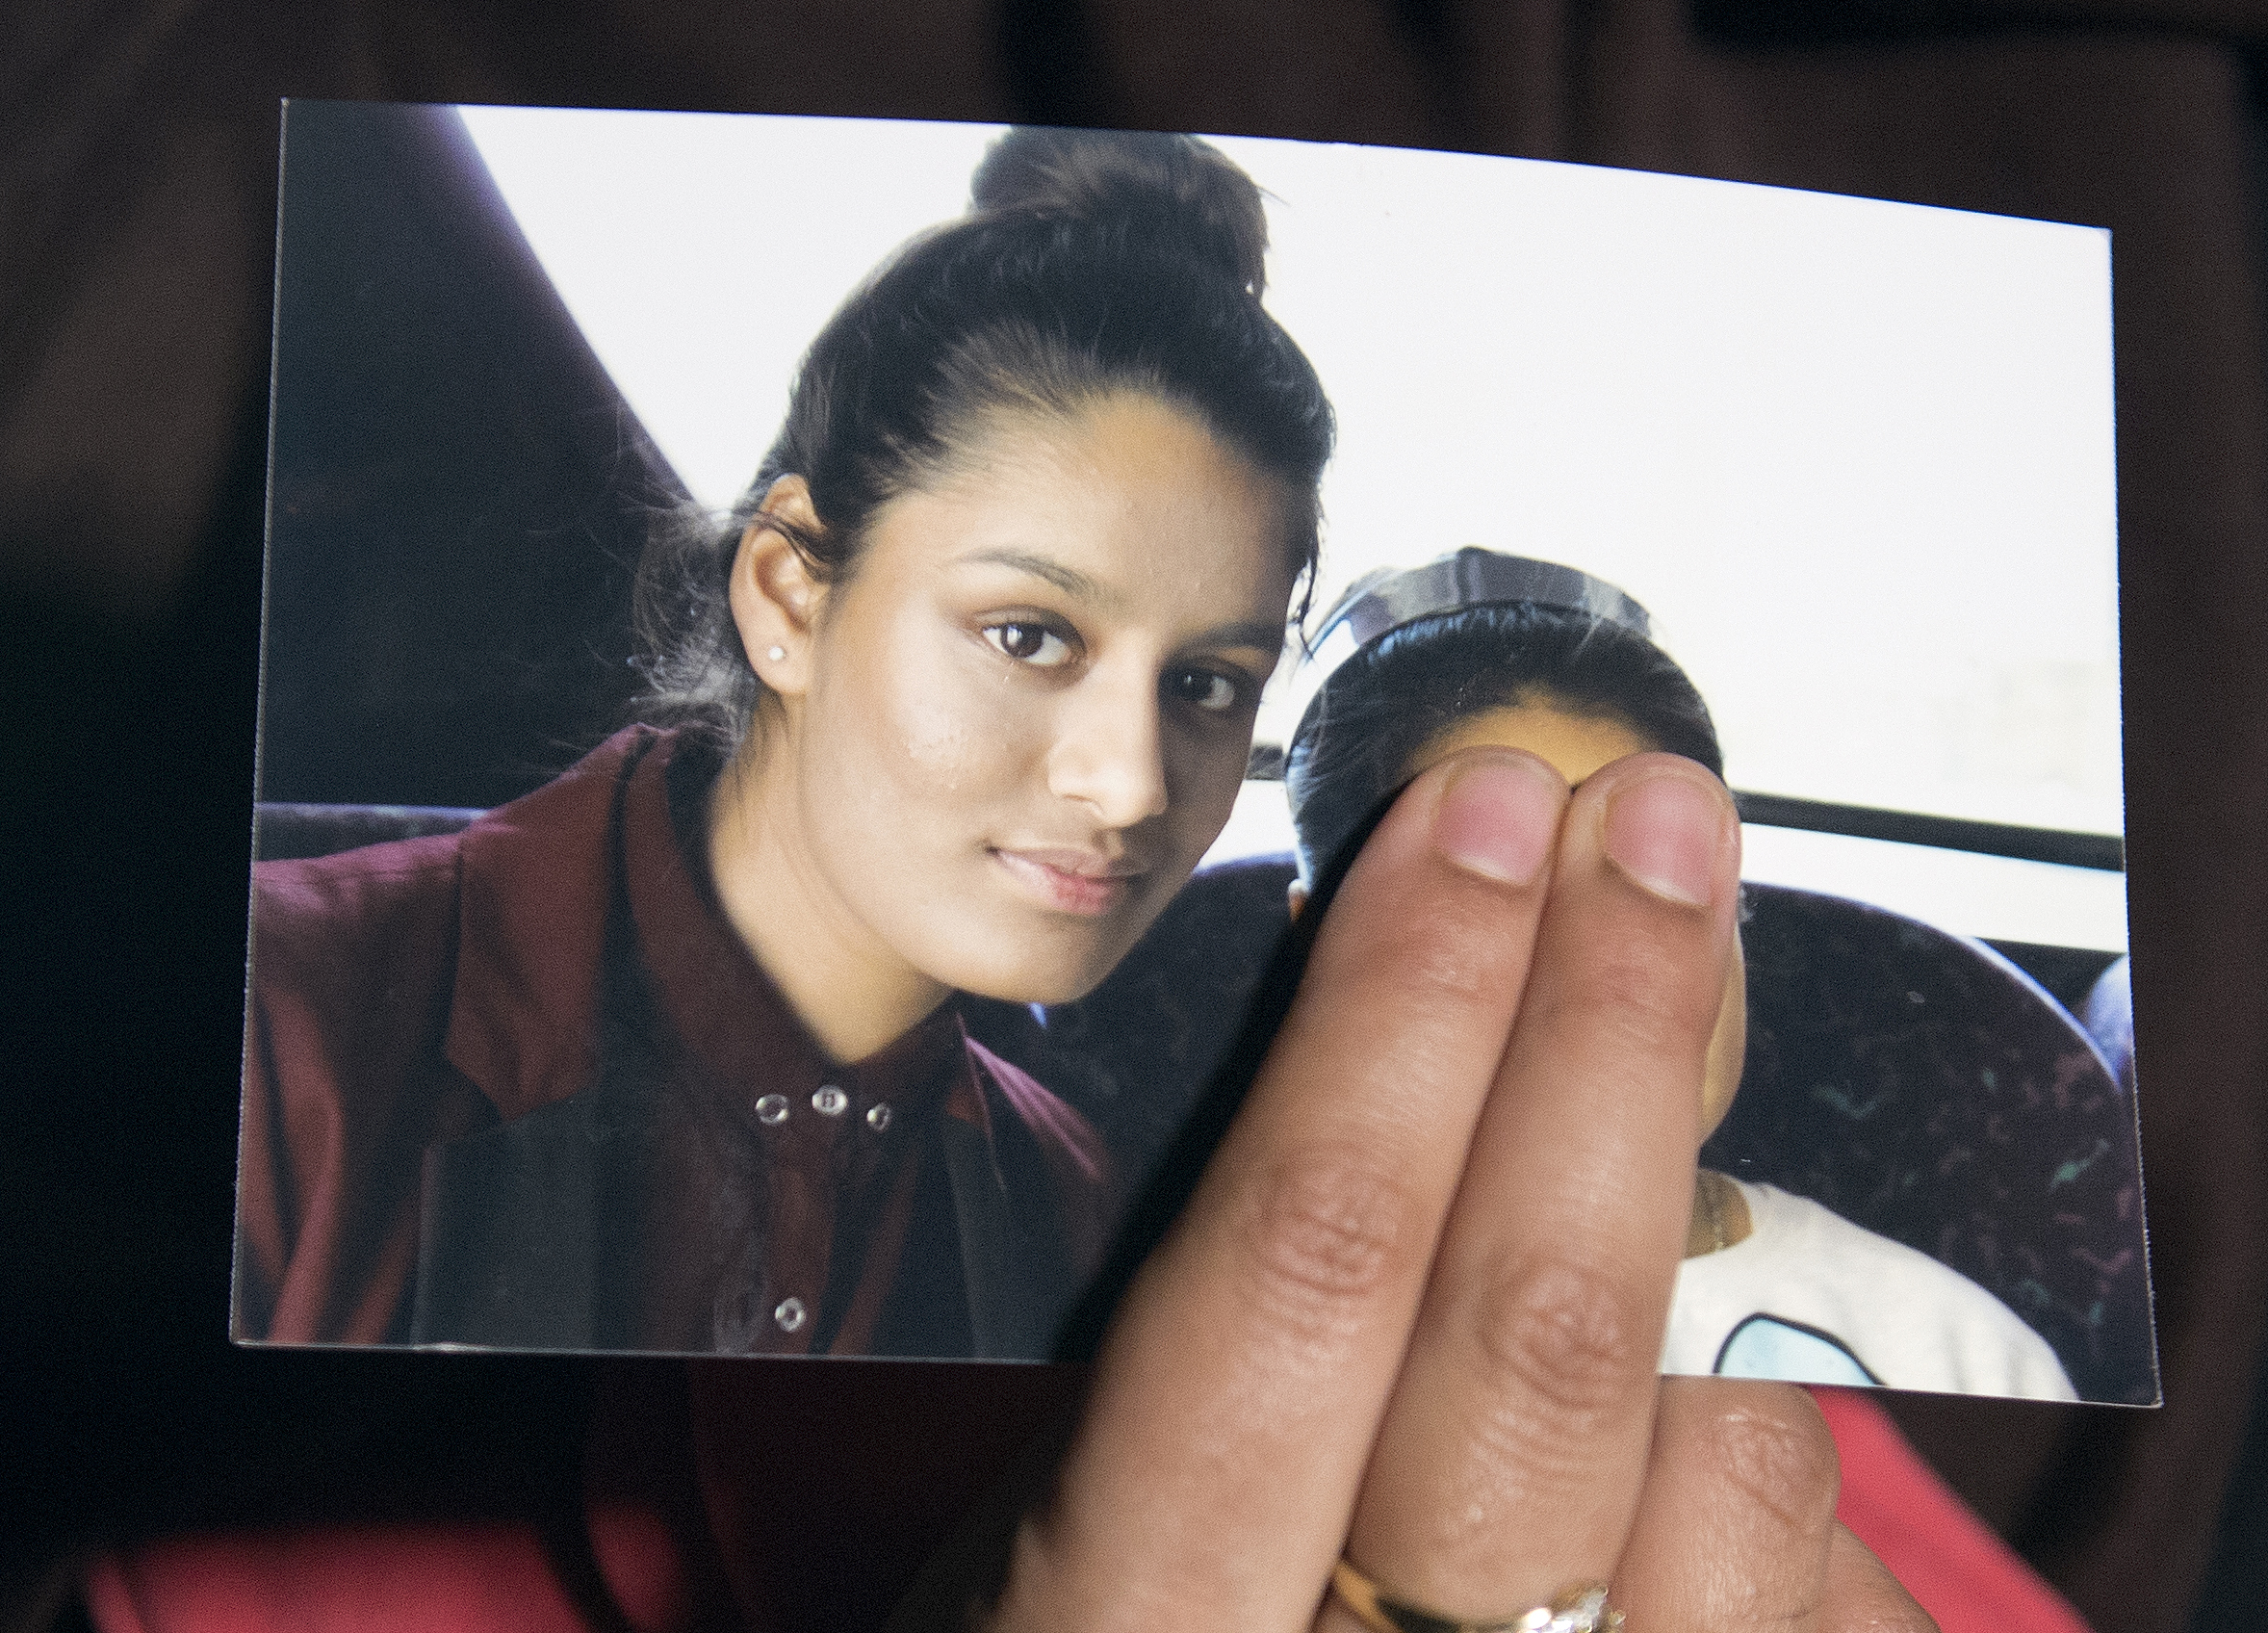 Renu Begun, sister of teenage British girl Shamima Begun, holds a photo of her sister as she makes an appeal for her to return home at Scotland Yard in London on Feb. 22, 2015